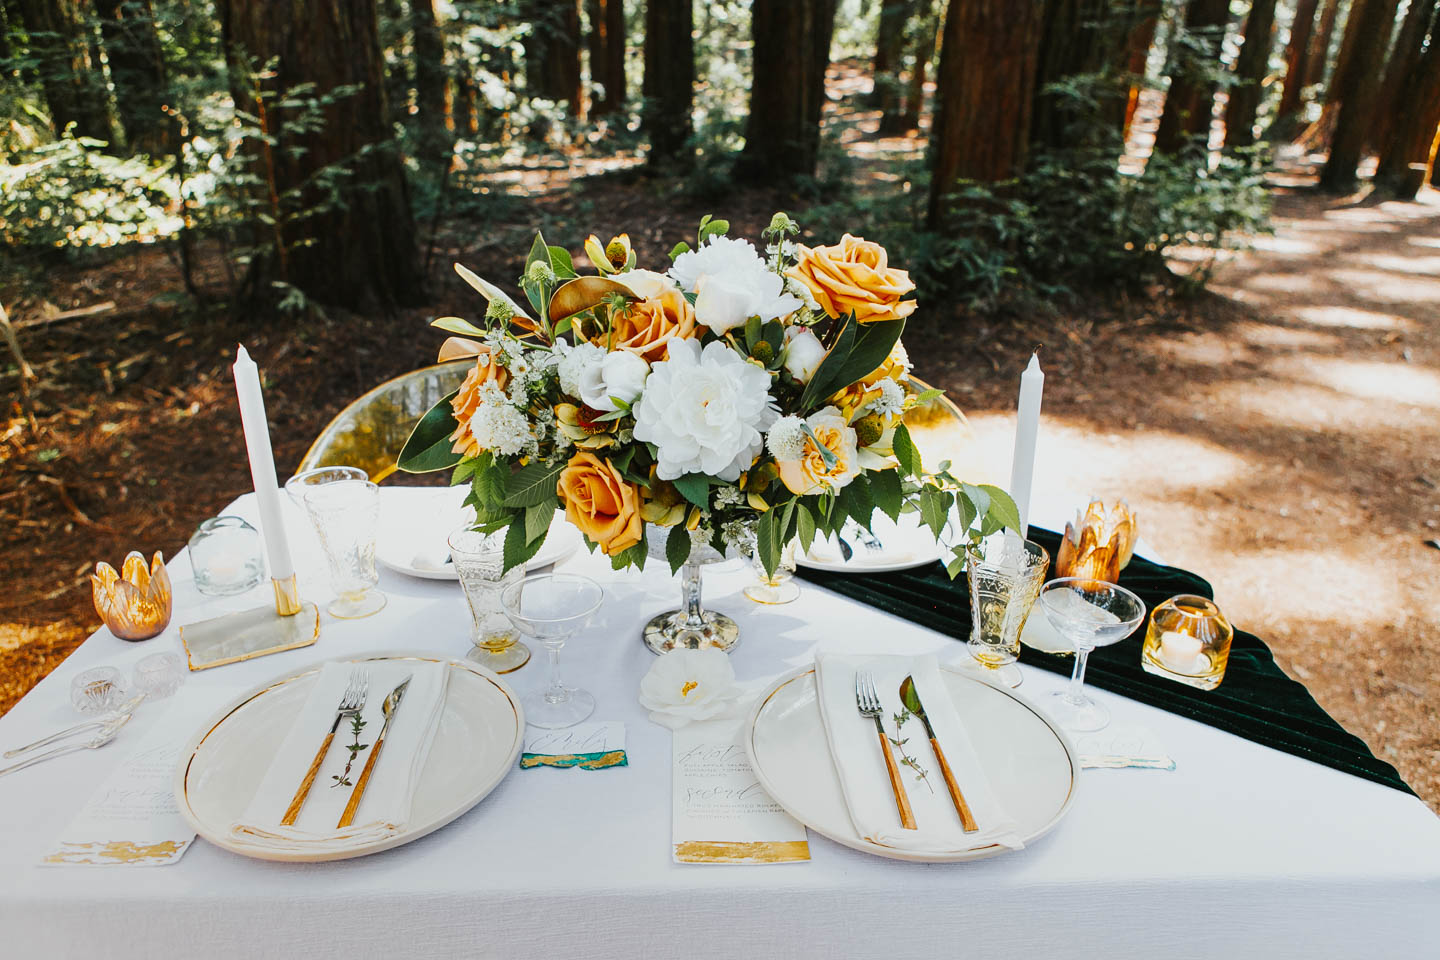 RedWoods_Styled_May2-44-2.jpg